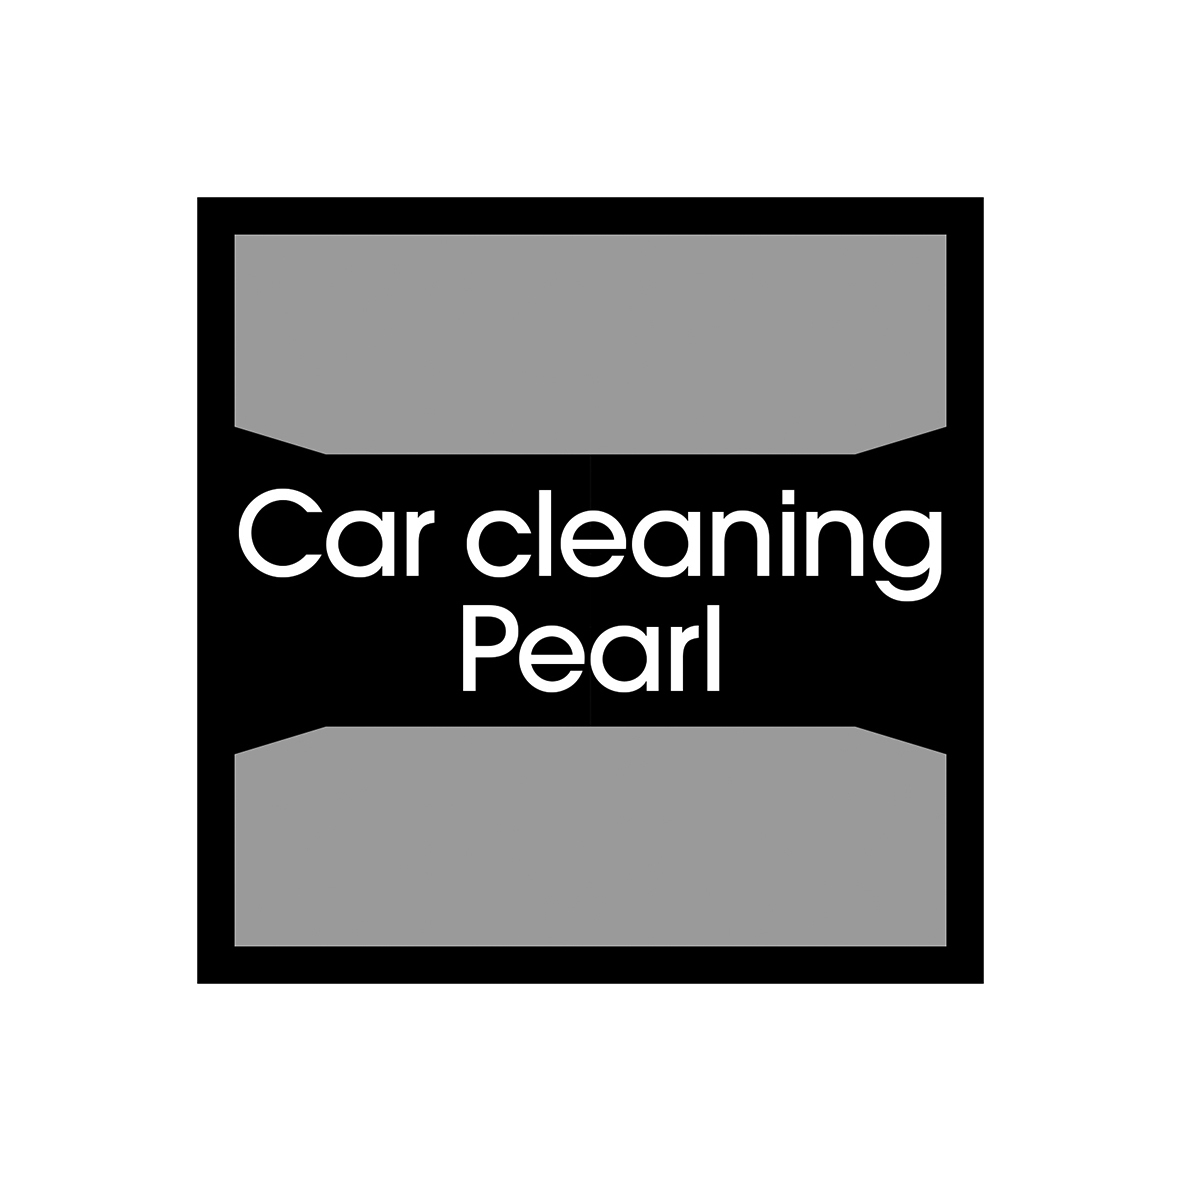 Car Cleaning Pearl